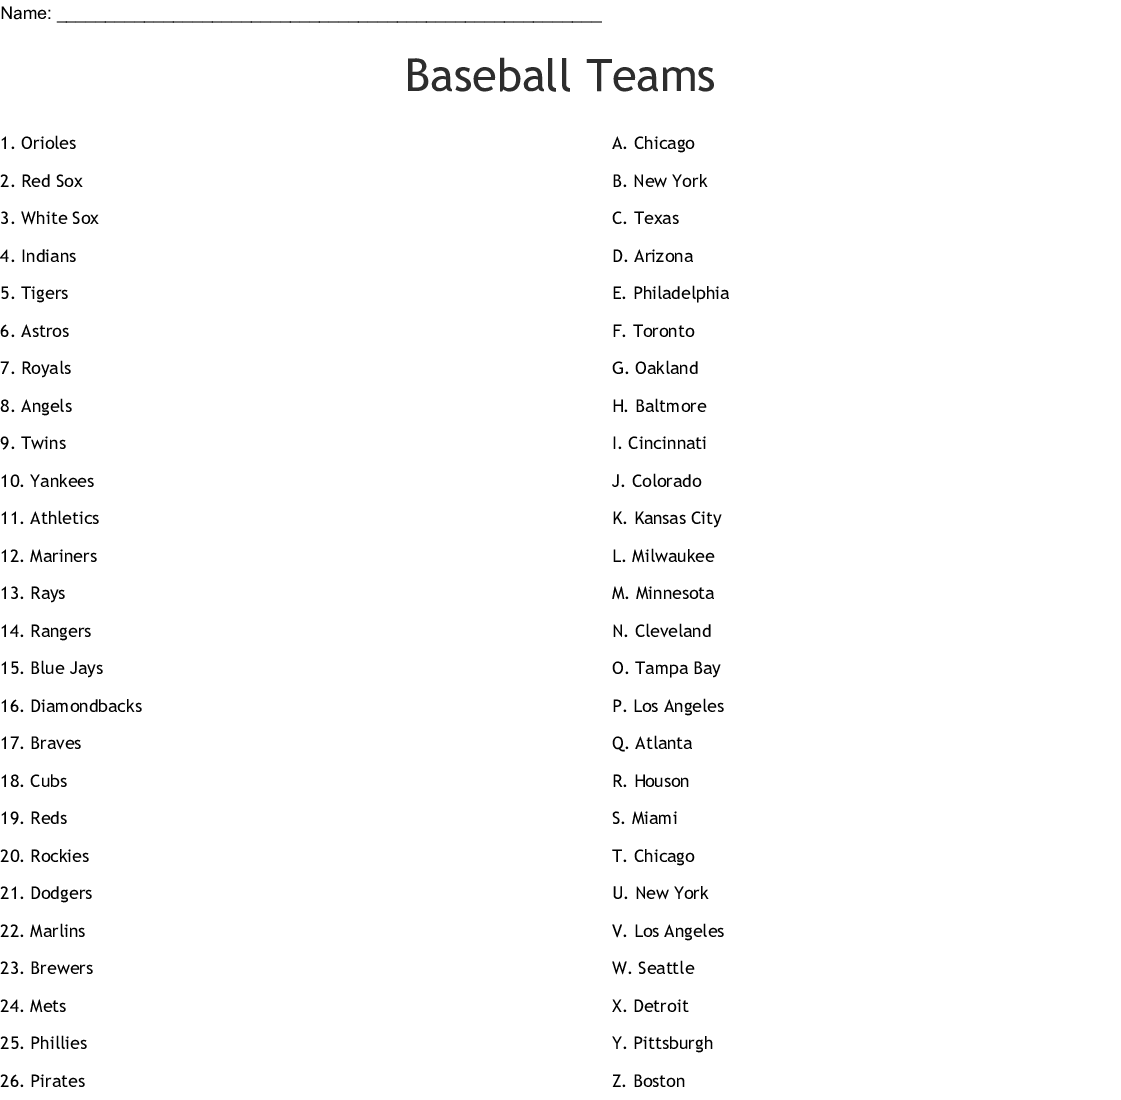 Baseball Teams Crossword